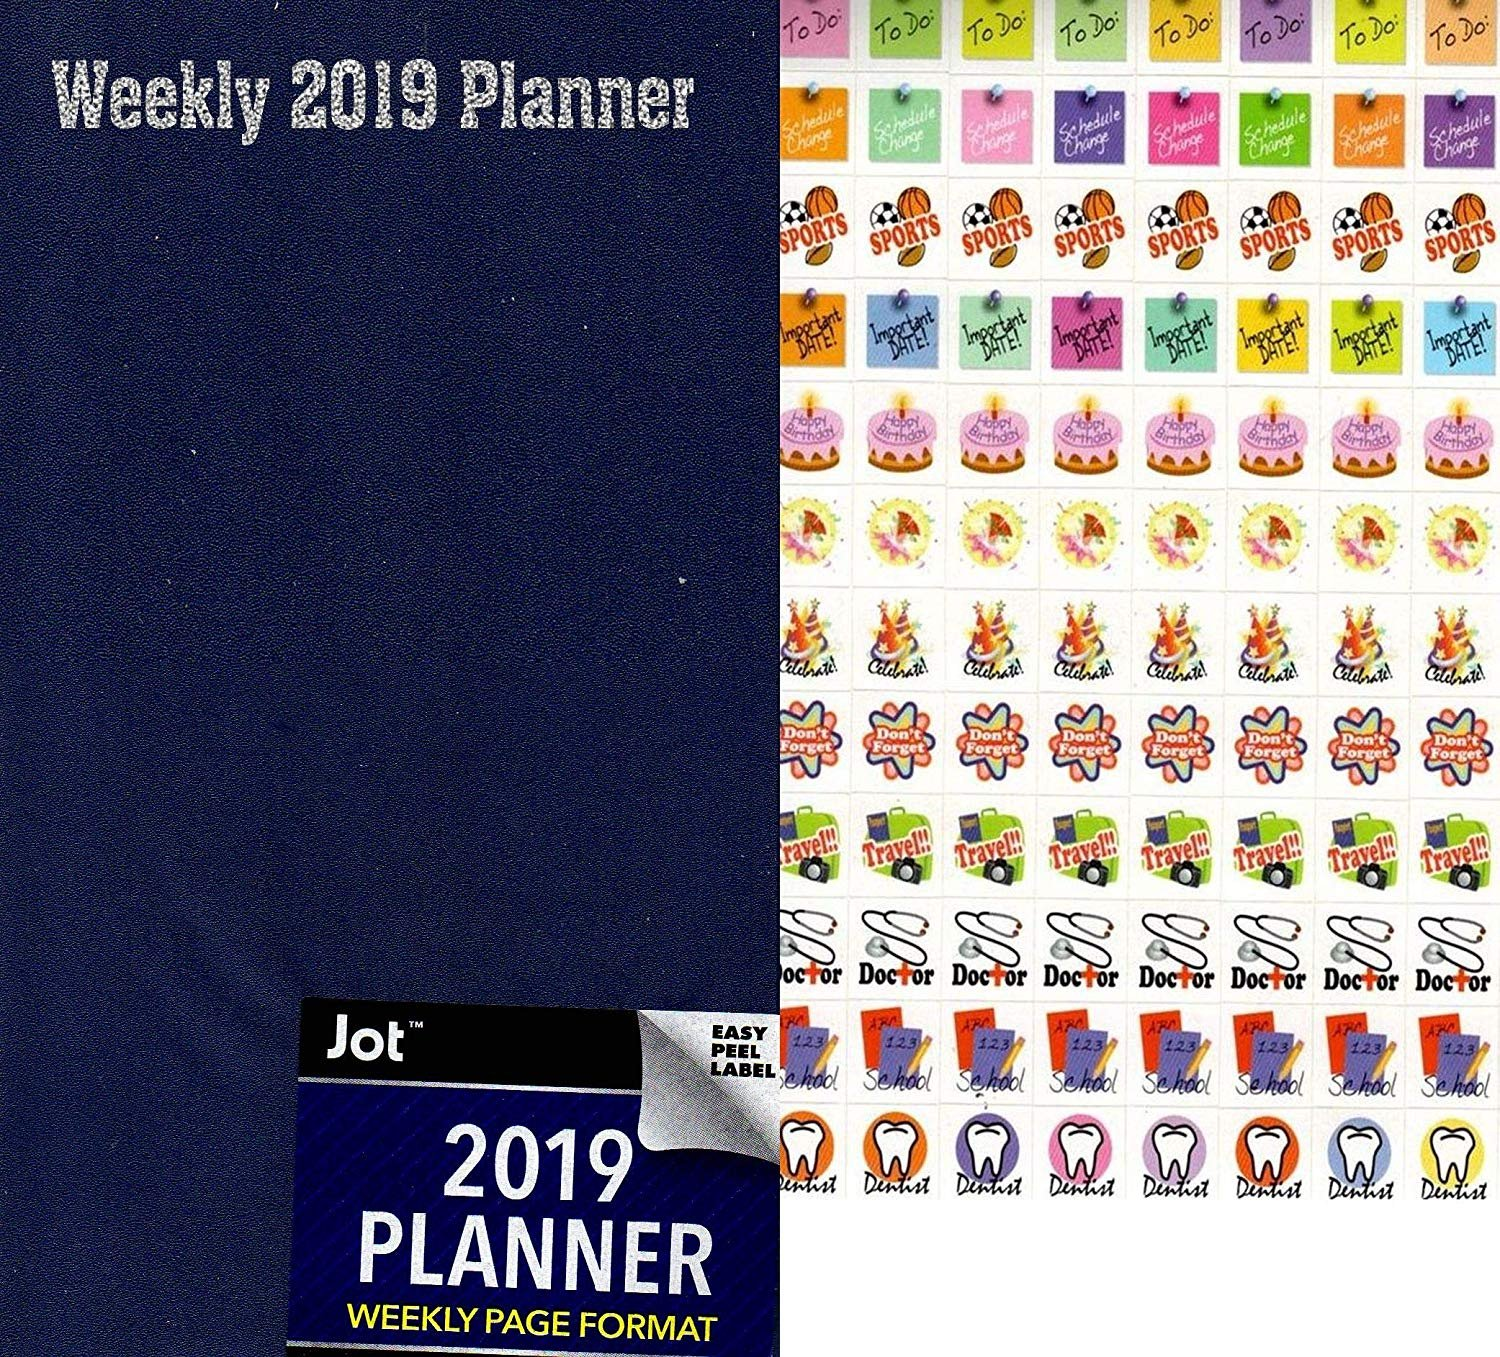 2019 Weekly Pocket Appointment Planner/Calendar/Organizer - Color(Navy Blue) - with 120 Stickers